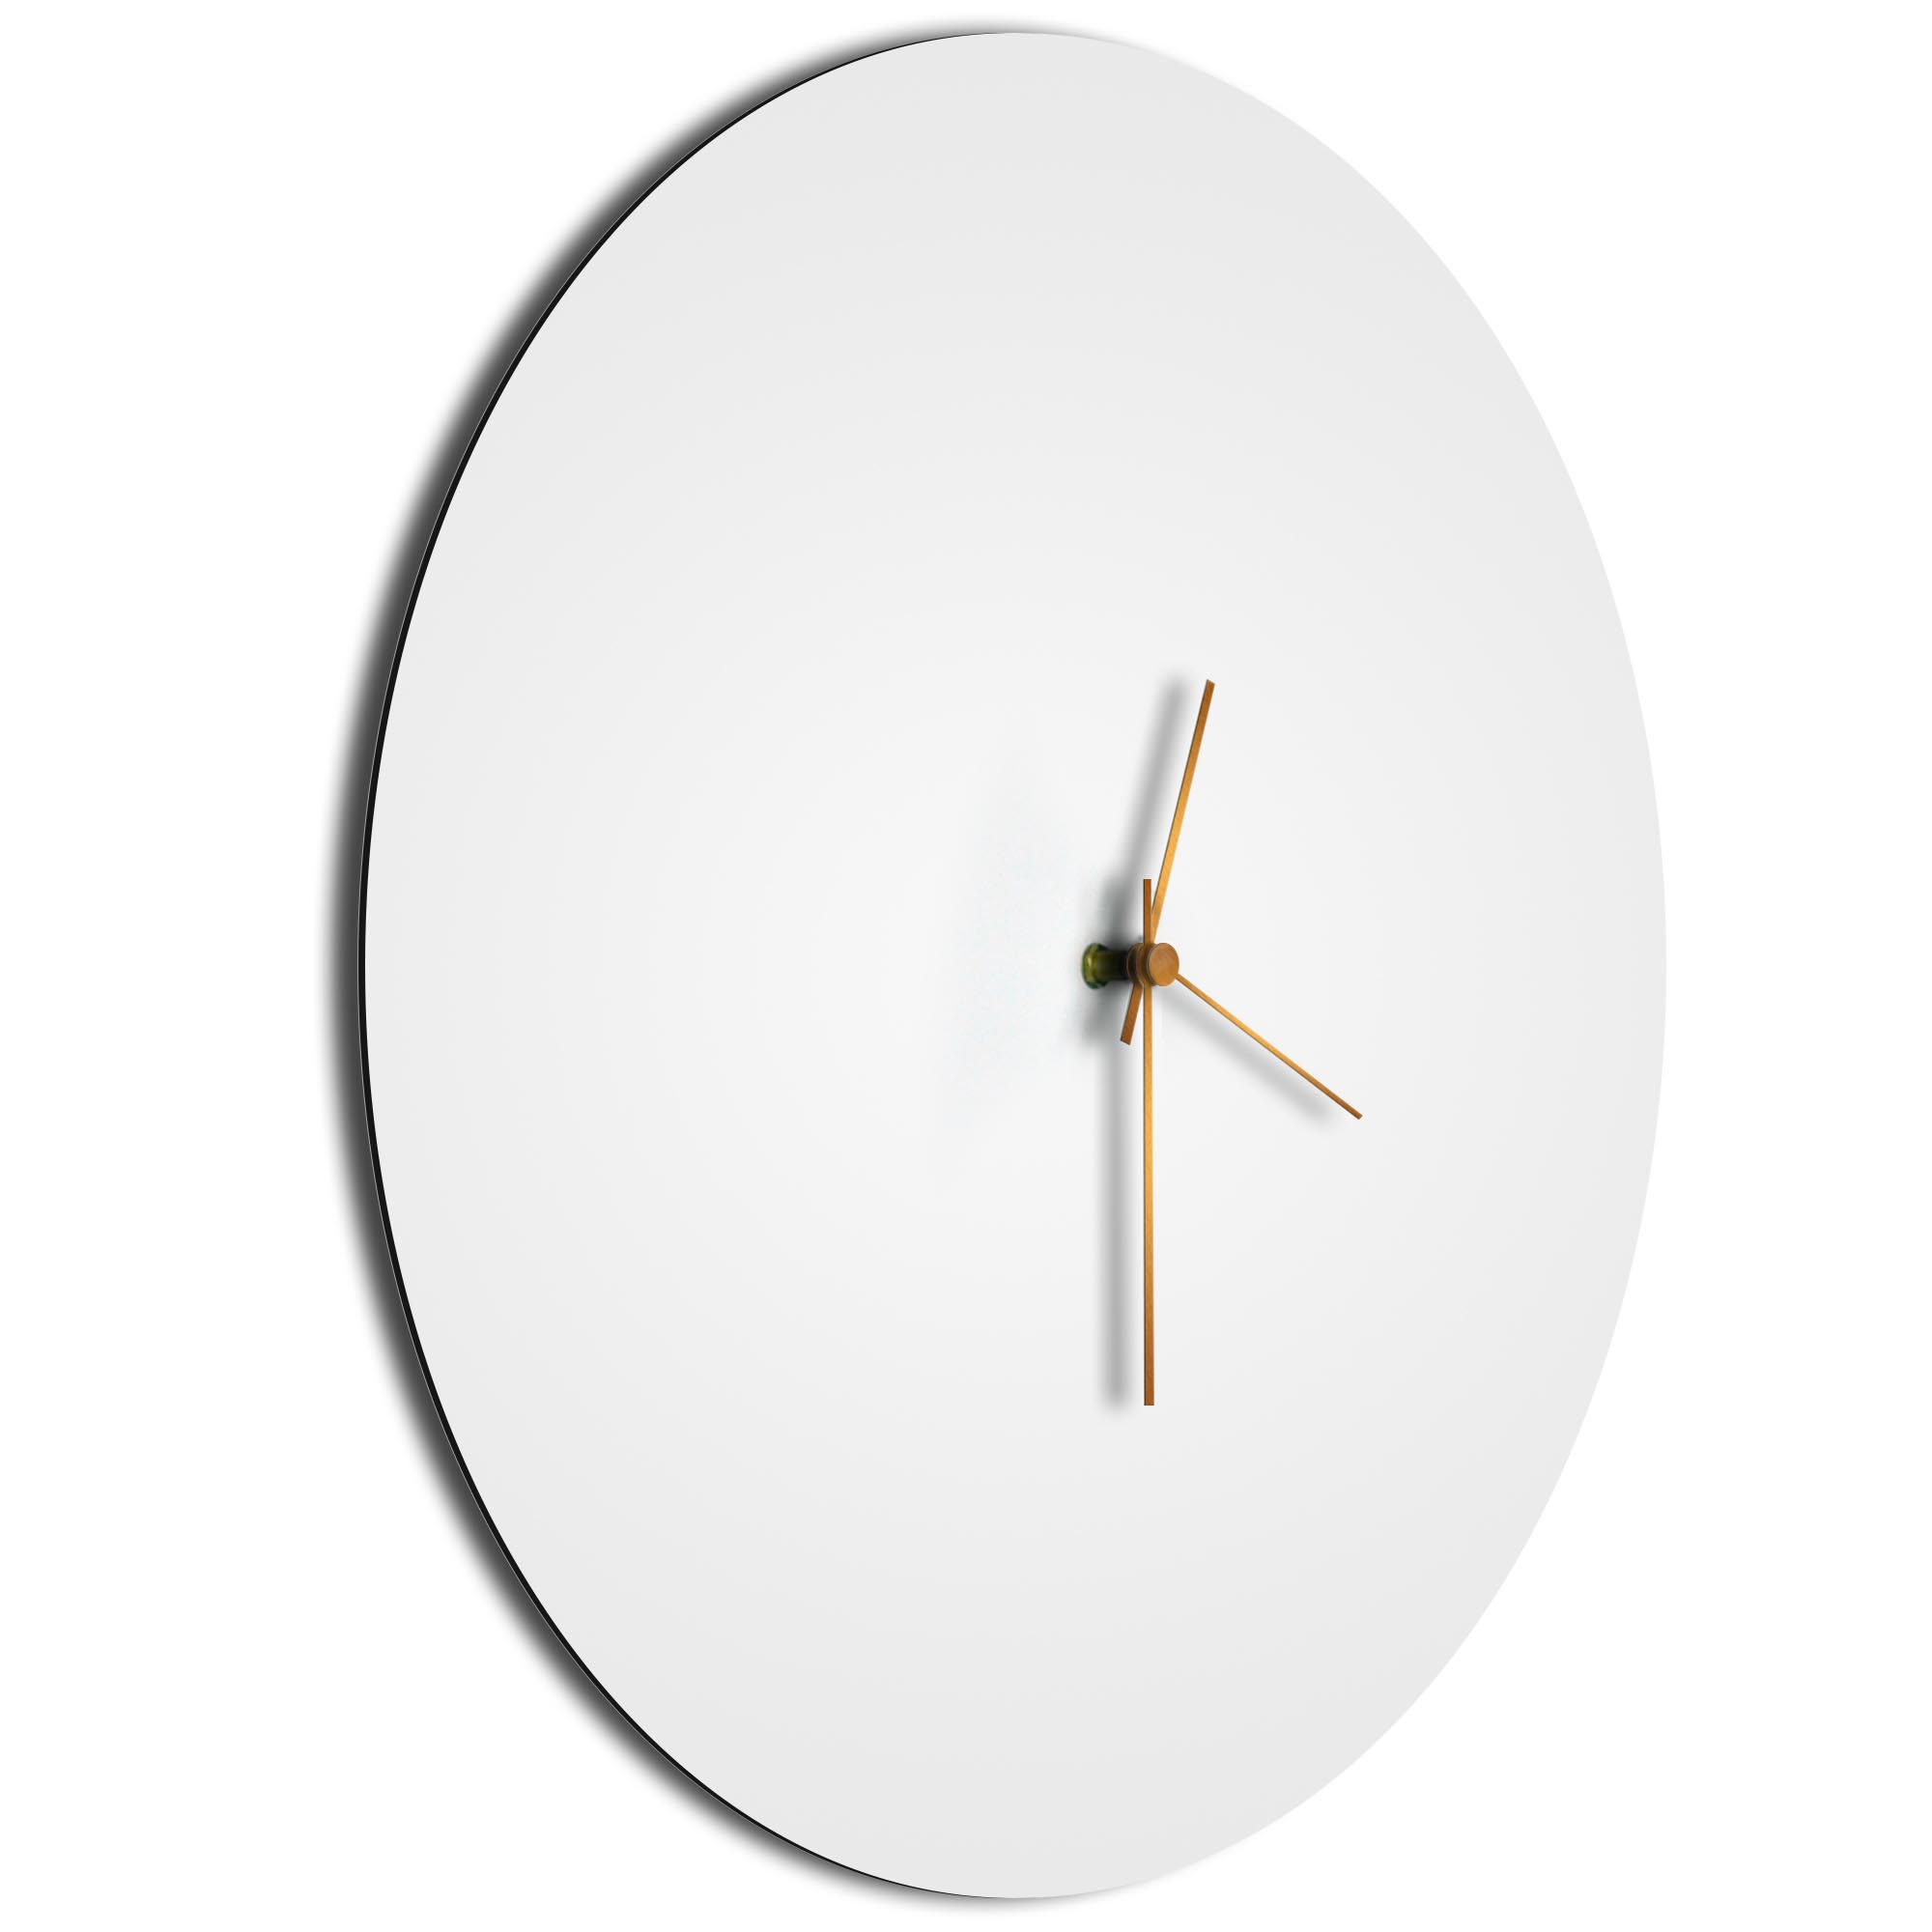 Whiteout Bronze Circle Clock Large - Image 2